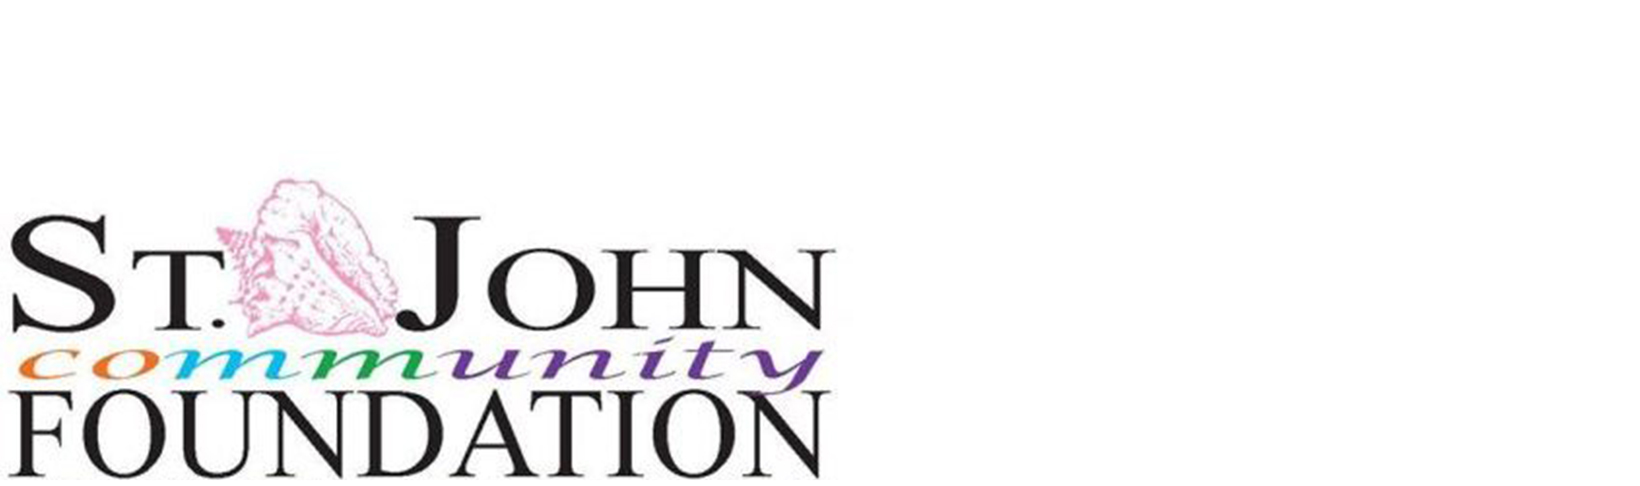 St. John Community Foundation